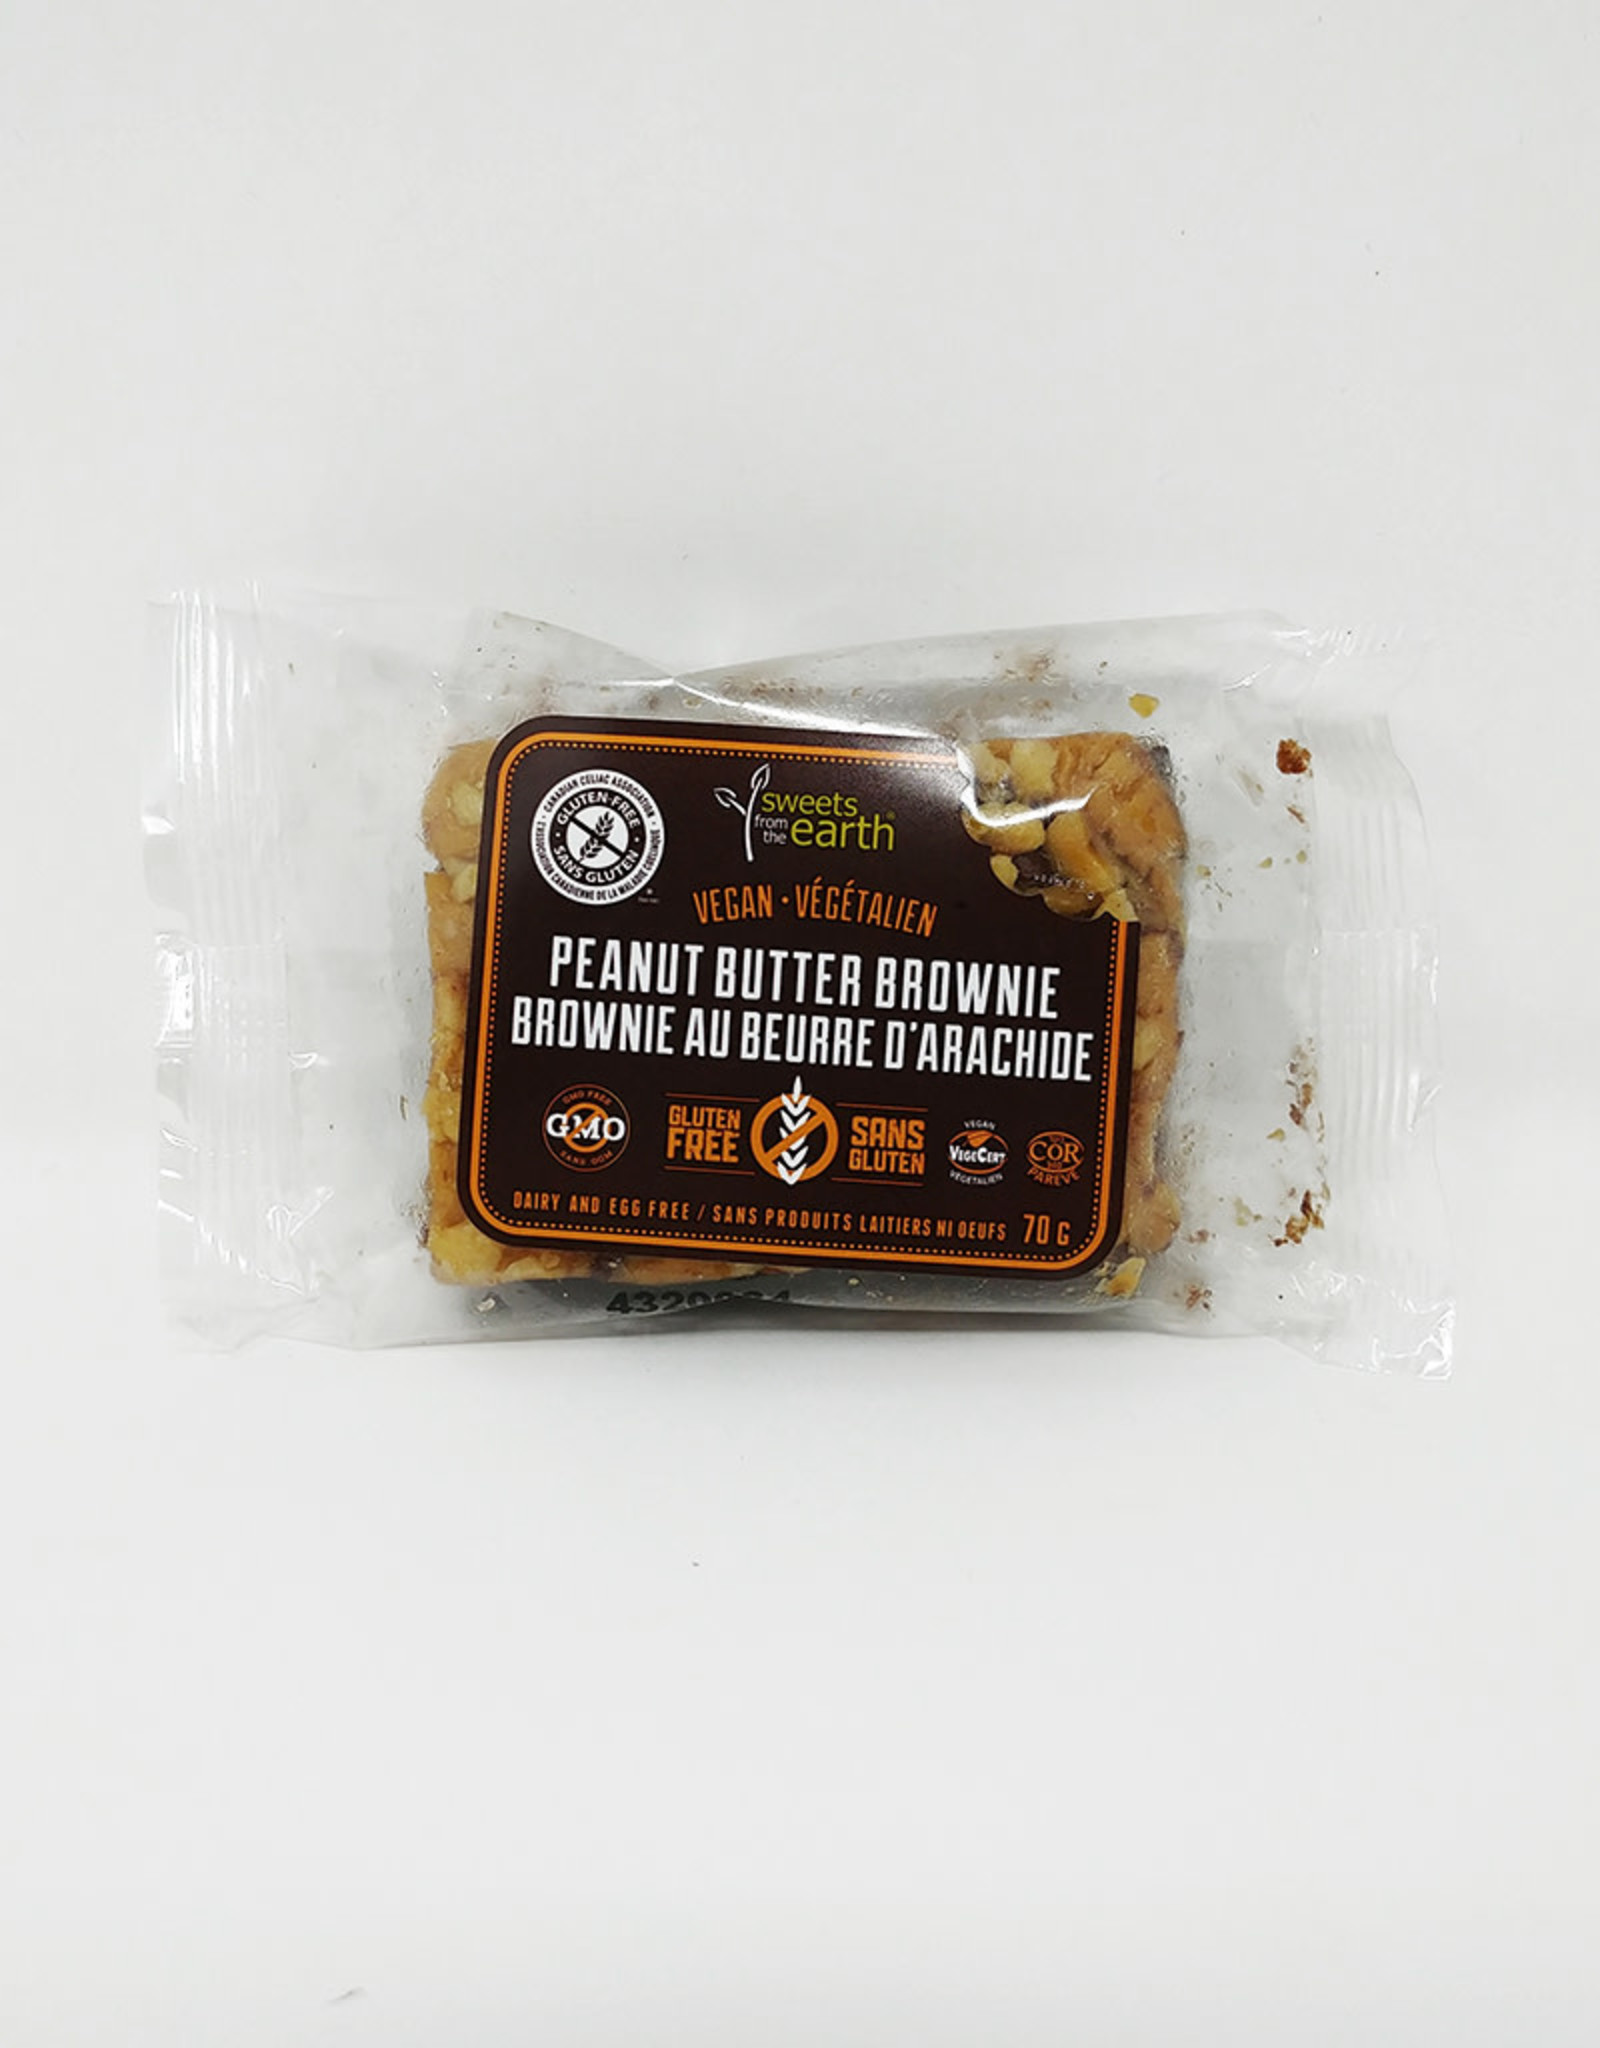 Sweets From The Earth Sweets From The Earth - GF Peanut Butter Brownie (70g)